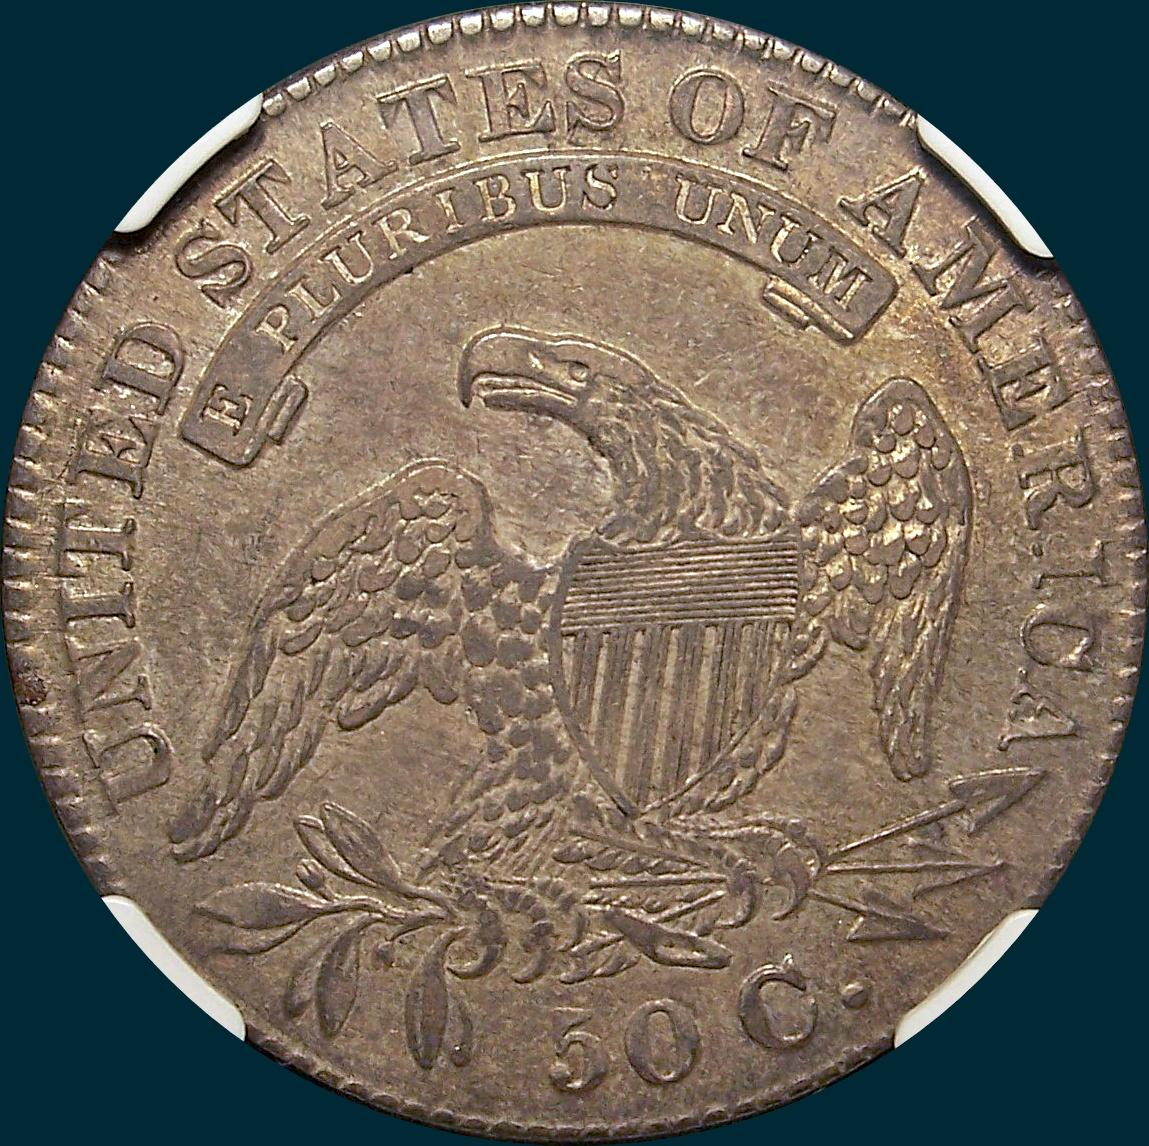 1830 O-108, small 0, capped bust half dollar